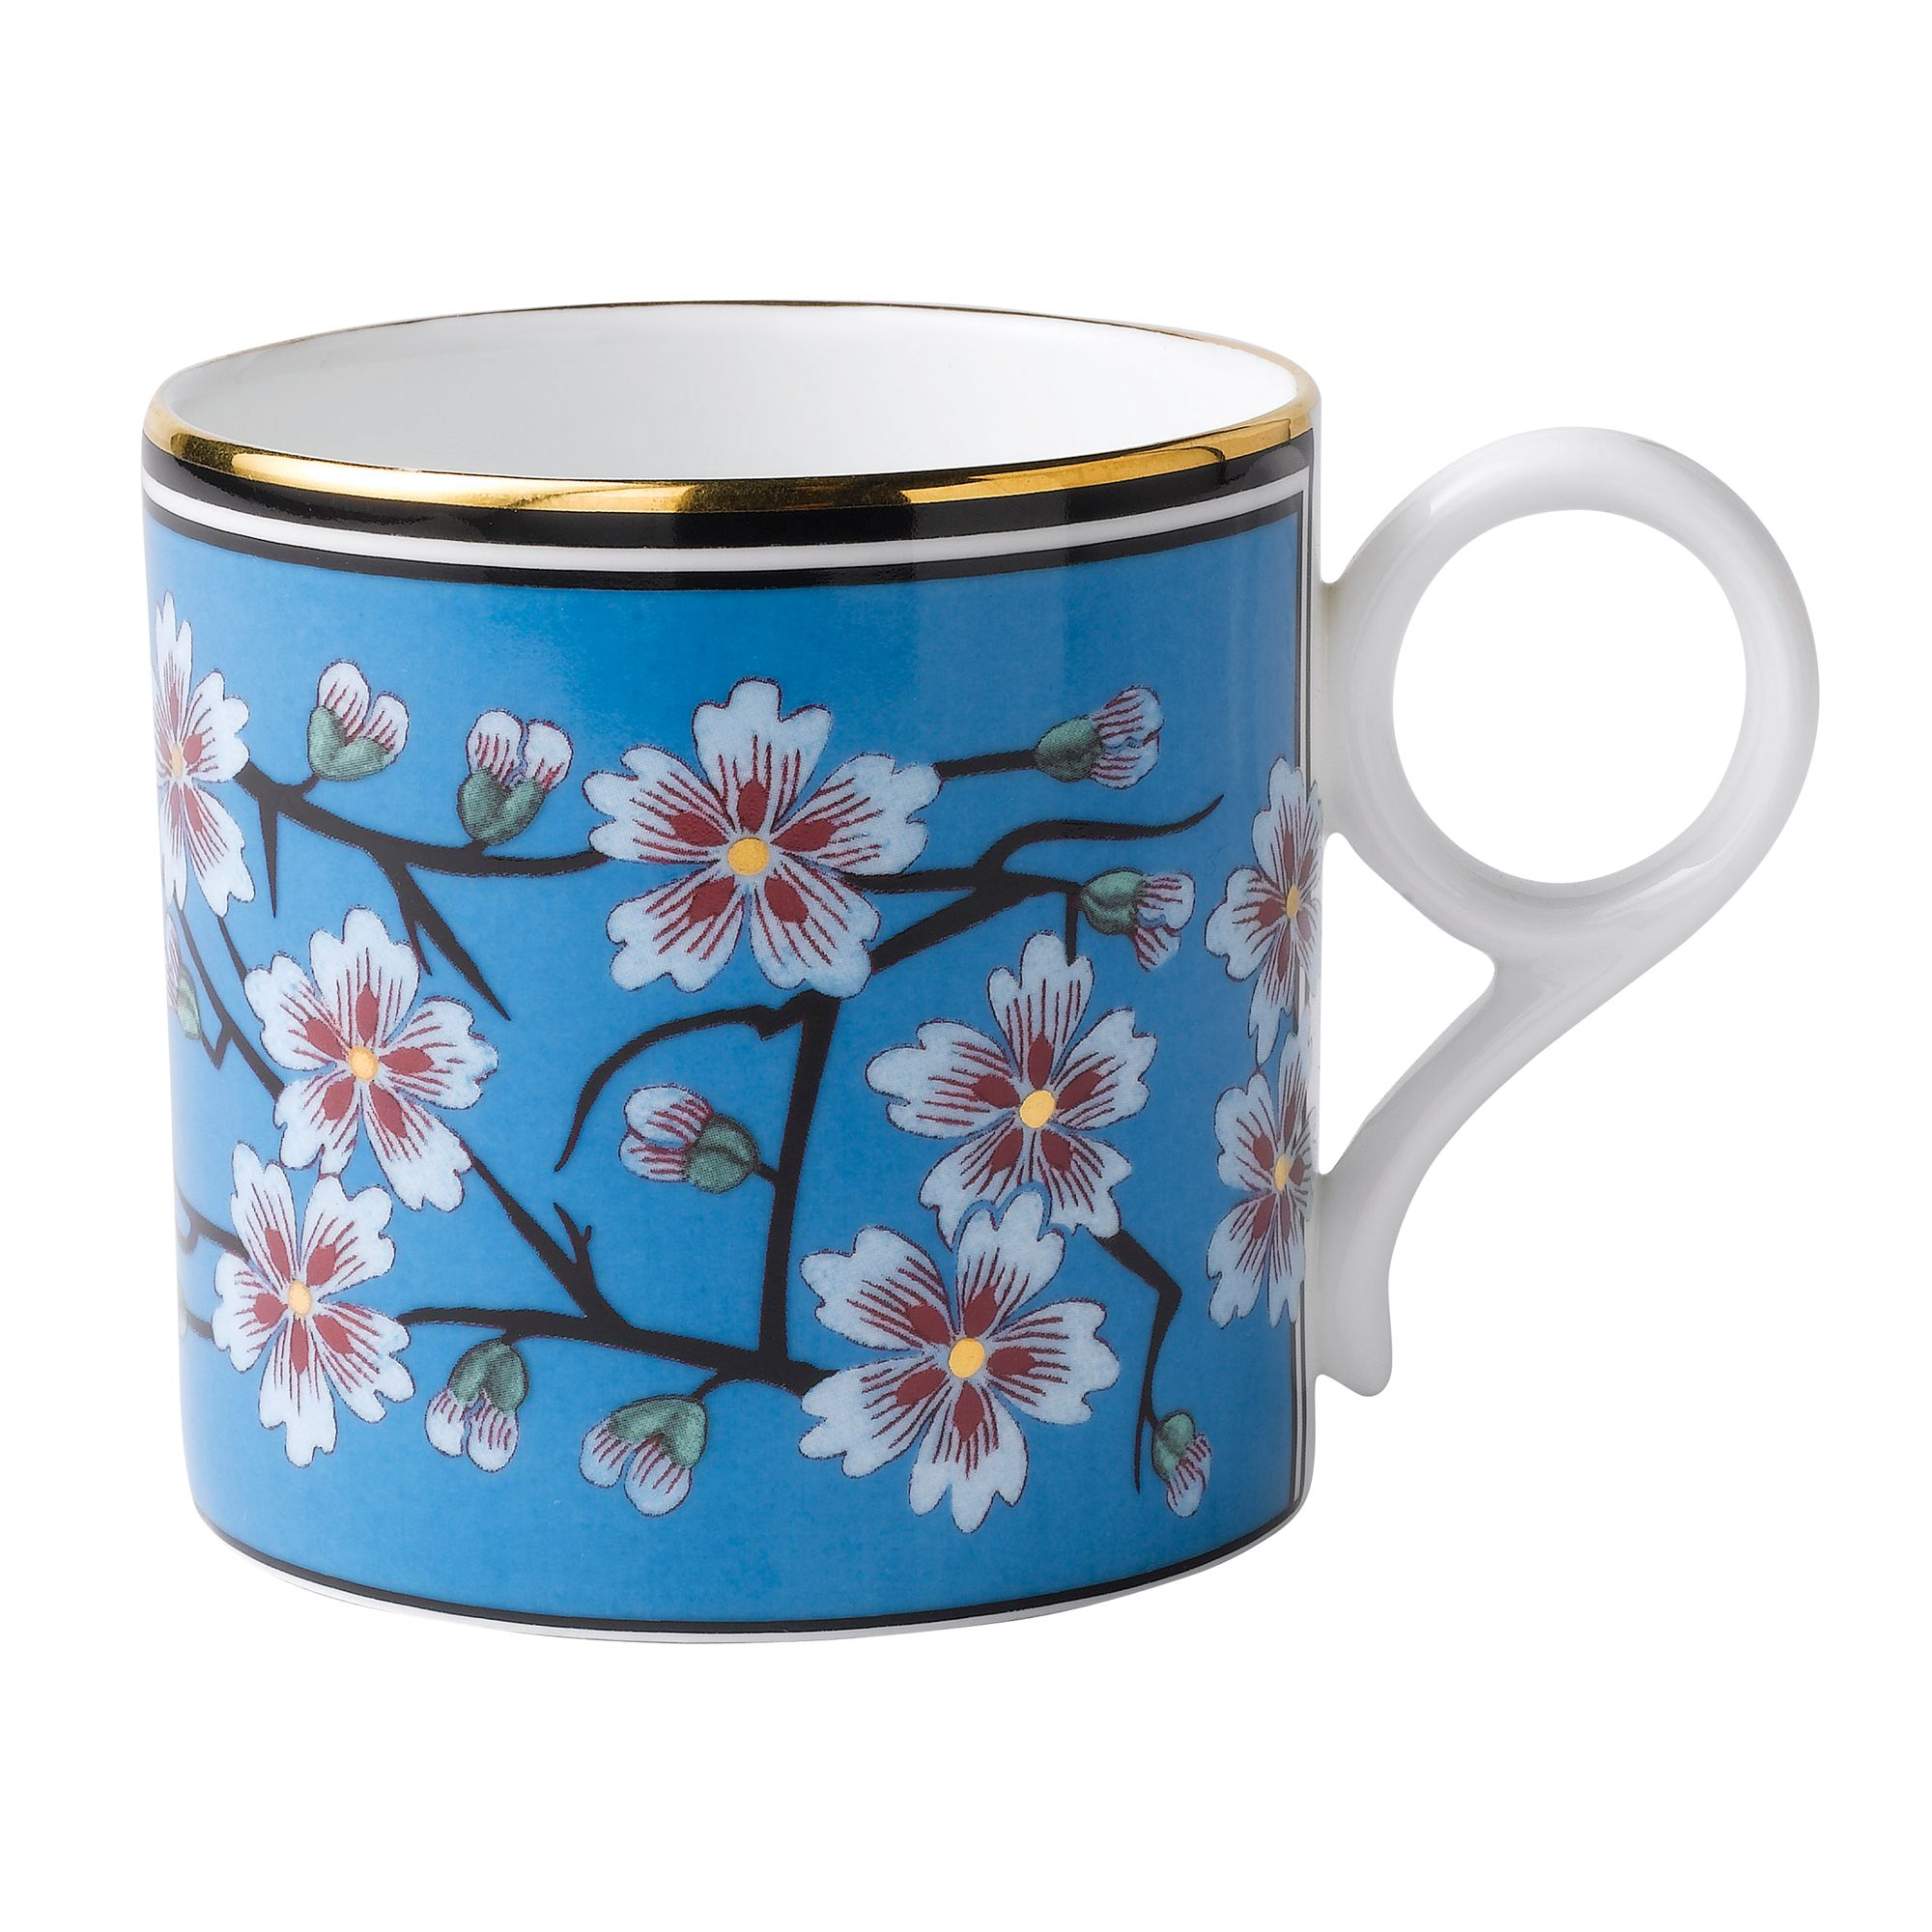 Archive Collection Blue Blossom Mug